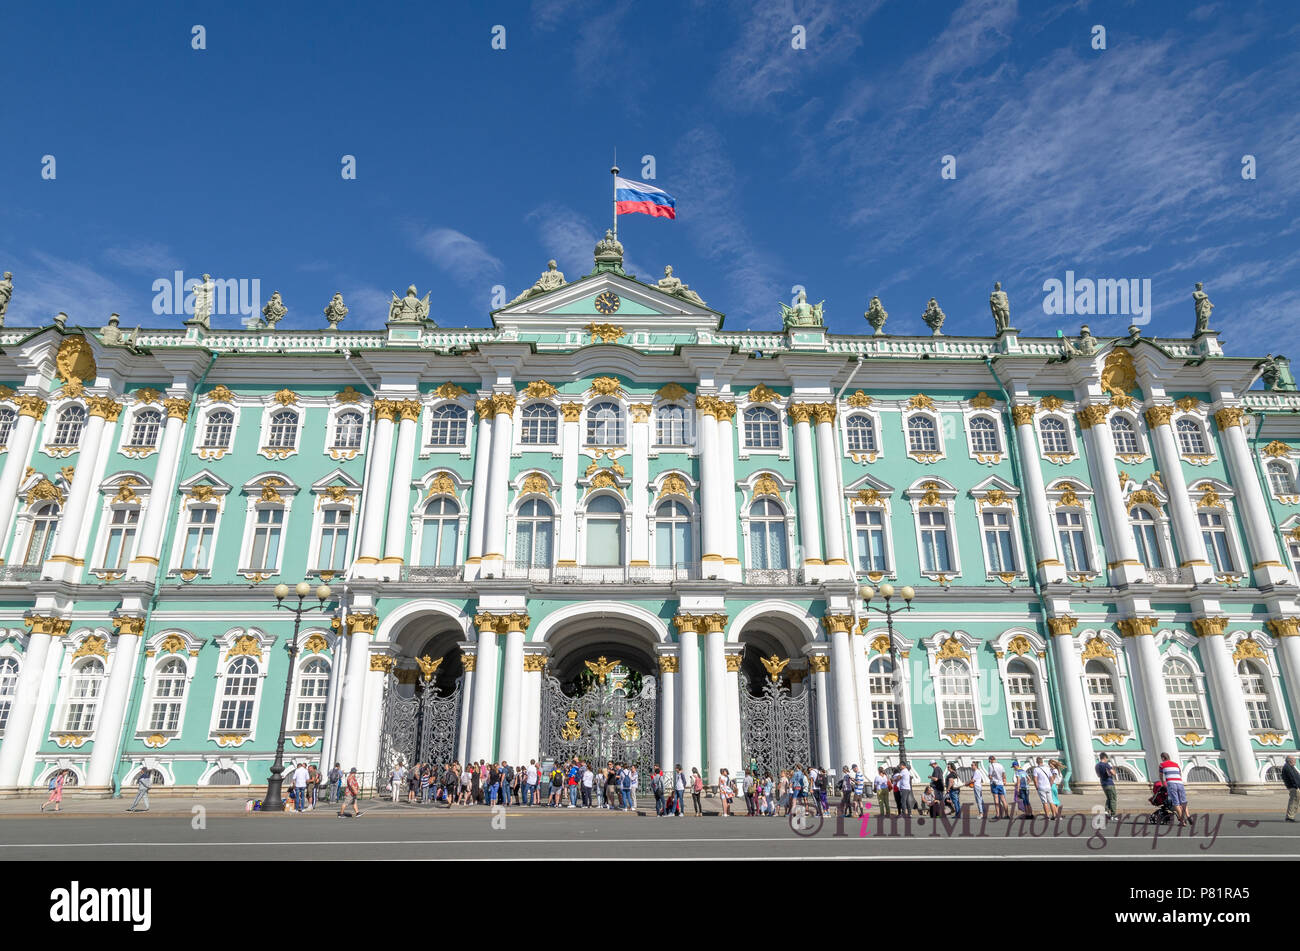 Tourists queuing to enter the Winter Palace and State Hermitage Museum in St Petersburg - Stock Image